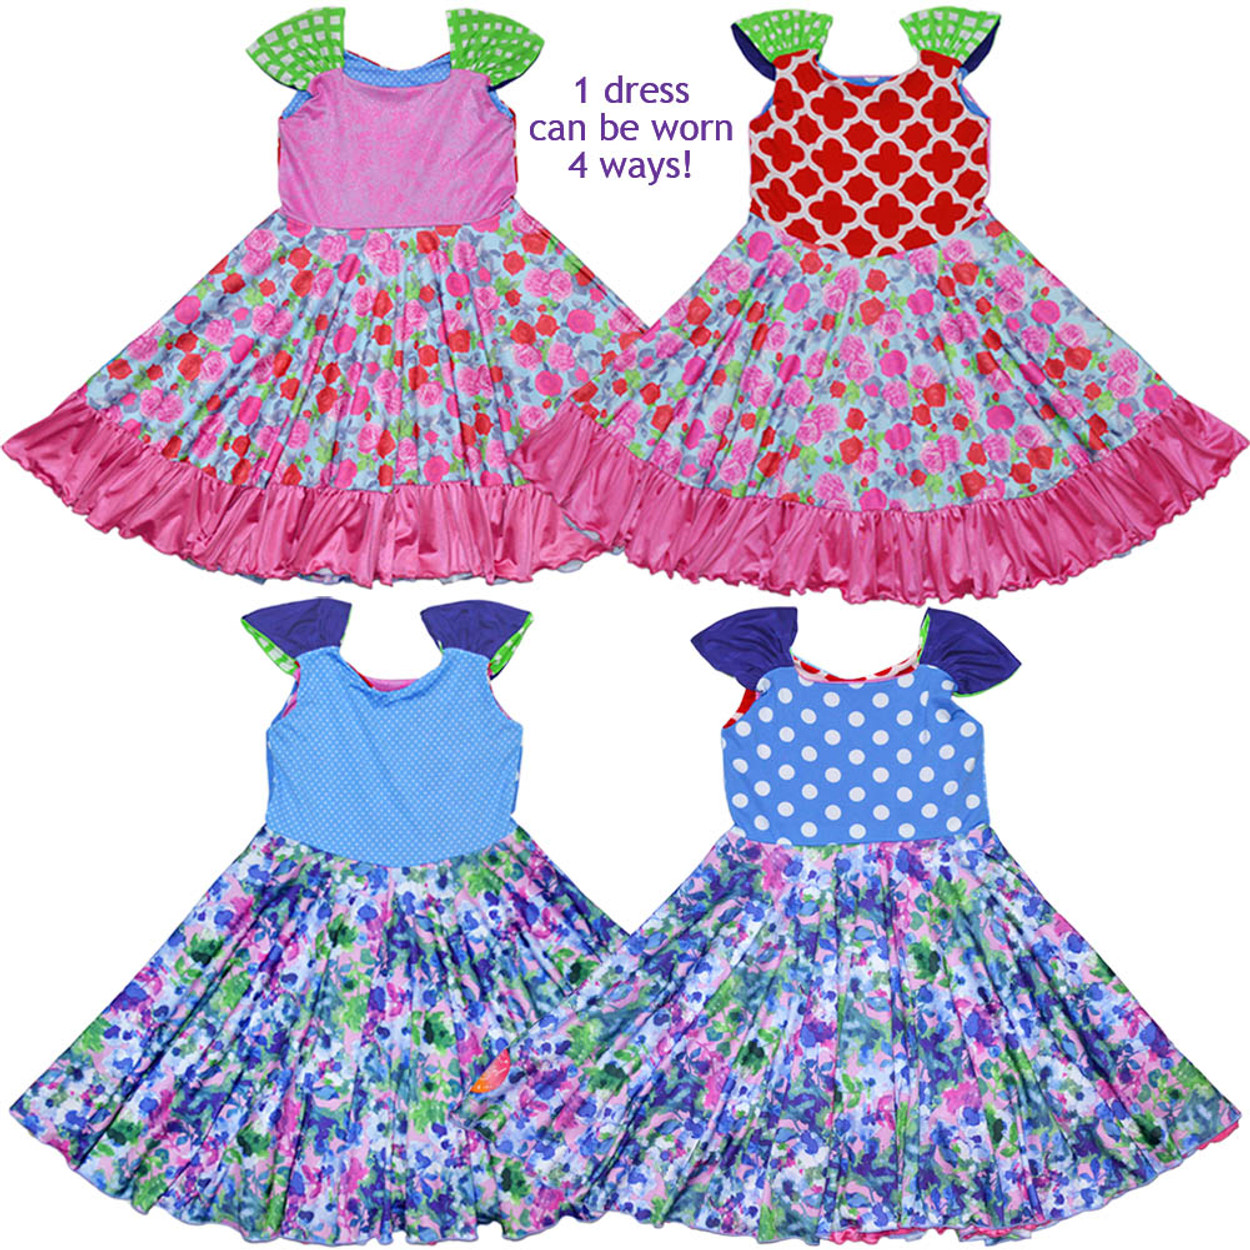 c8f8d050a Twirly Girl Twirling Dress for Girls Reversible Darling 4 Way Design ...